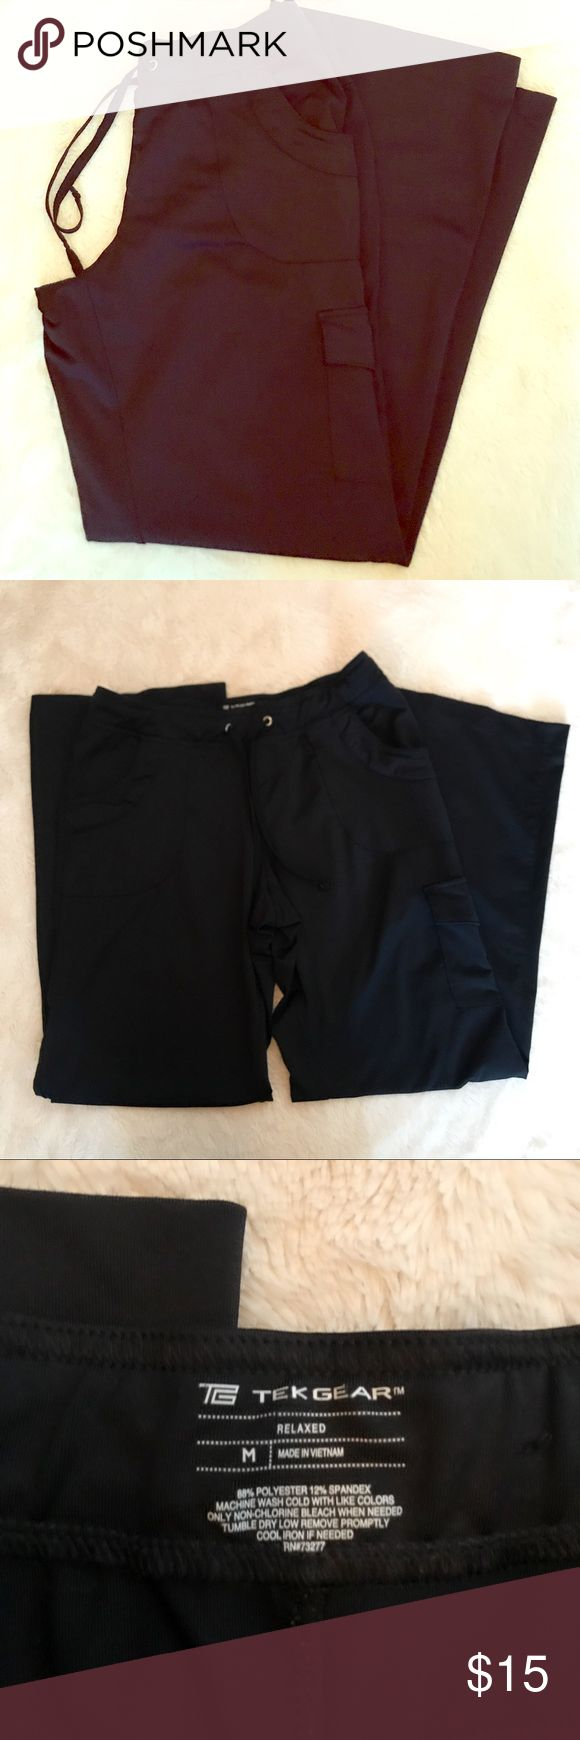 Tell Gear Relaxed Yoga Pants Sz Medium These Tek Gear pants are SO comfy and cute. Very flattering with back pockets, side cargo pocket, 2 side pockets, drawstring waist. Great for studio wear or running errands. Relaxed fit size Medium! EUC! tek gear Pants